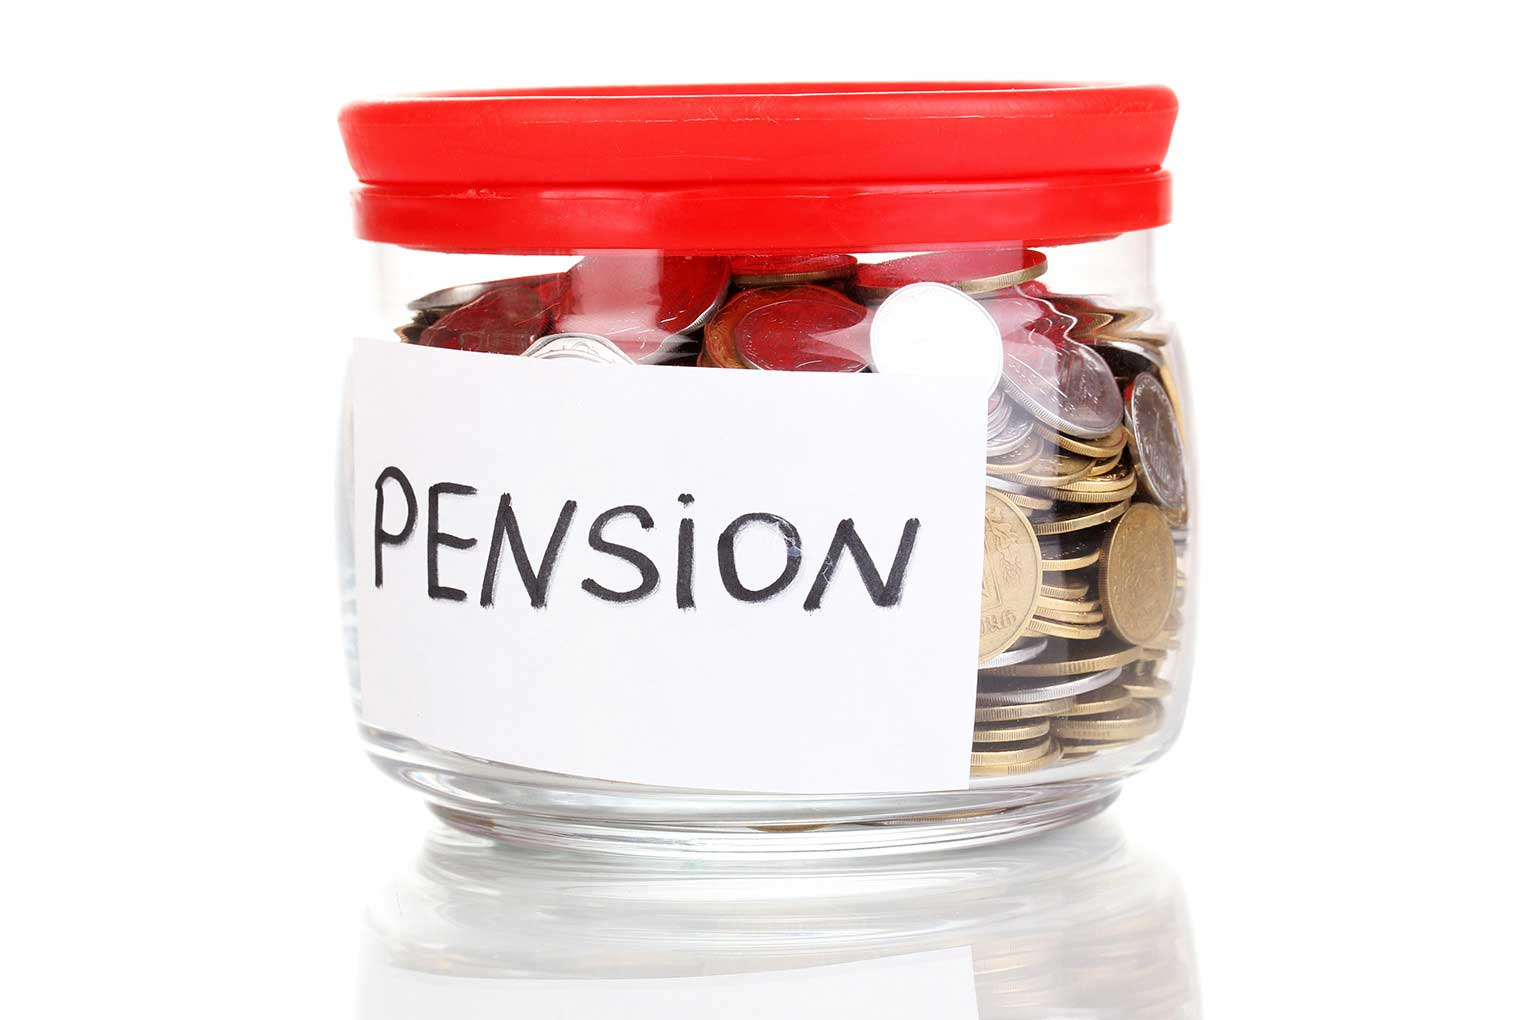 Number of retirees without savings decreases